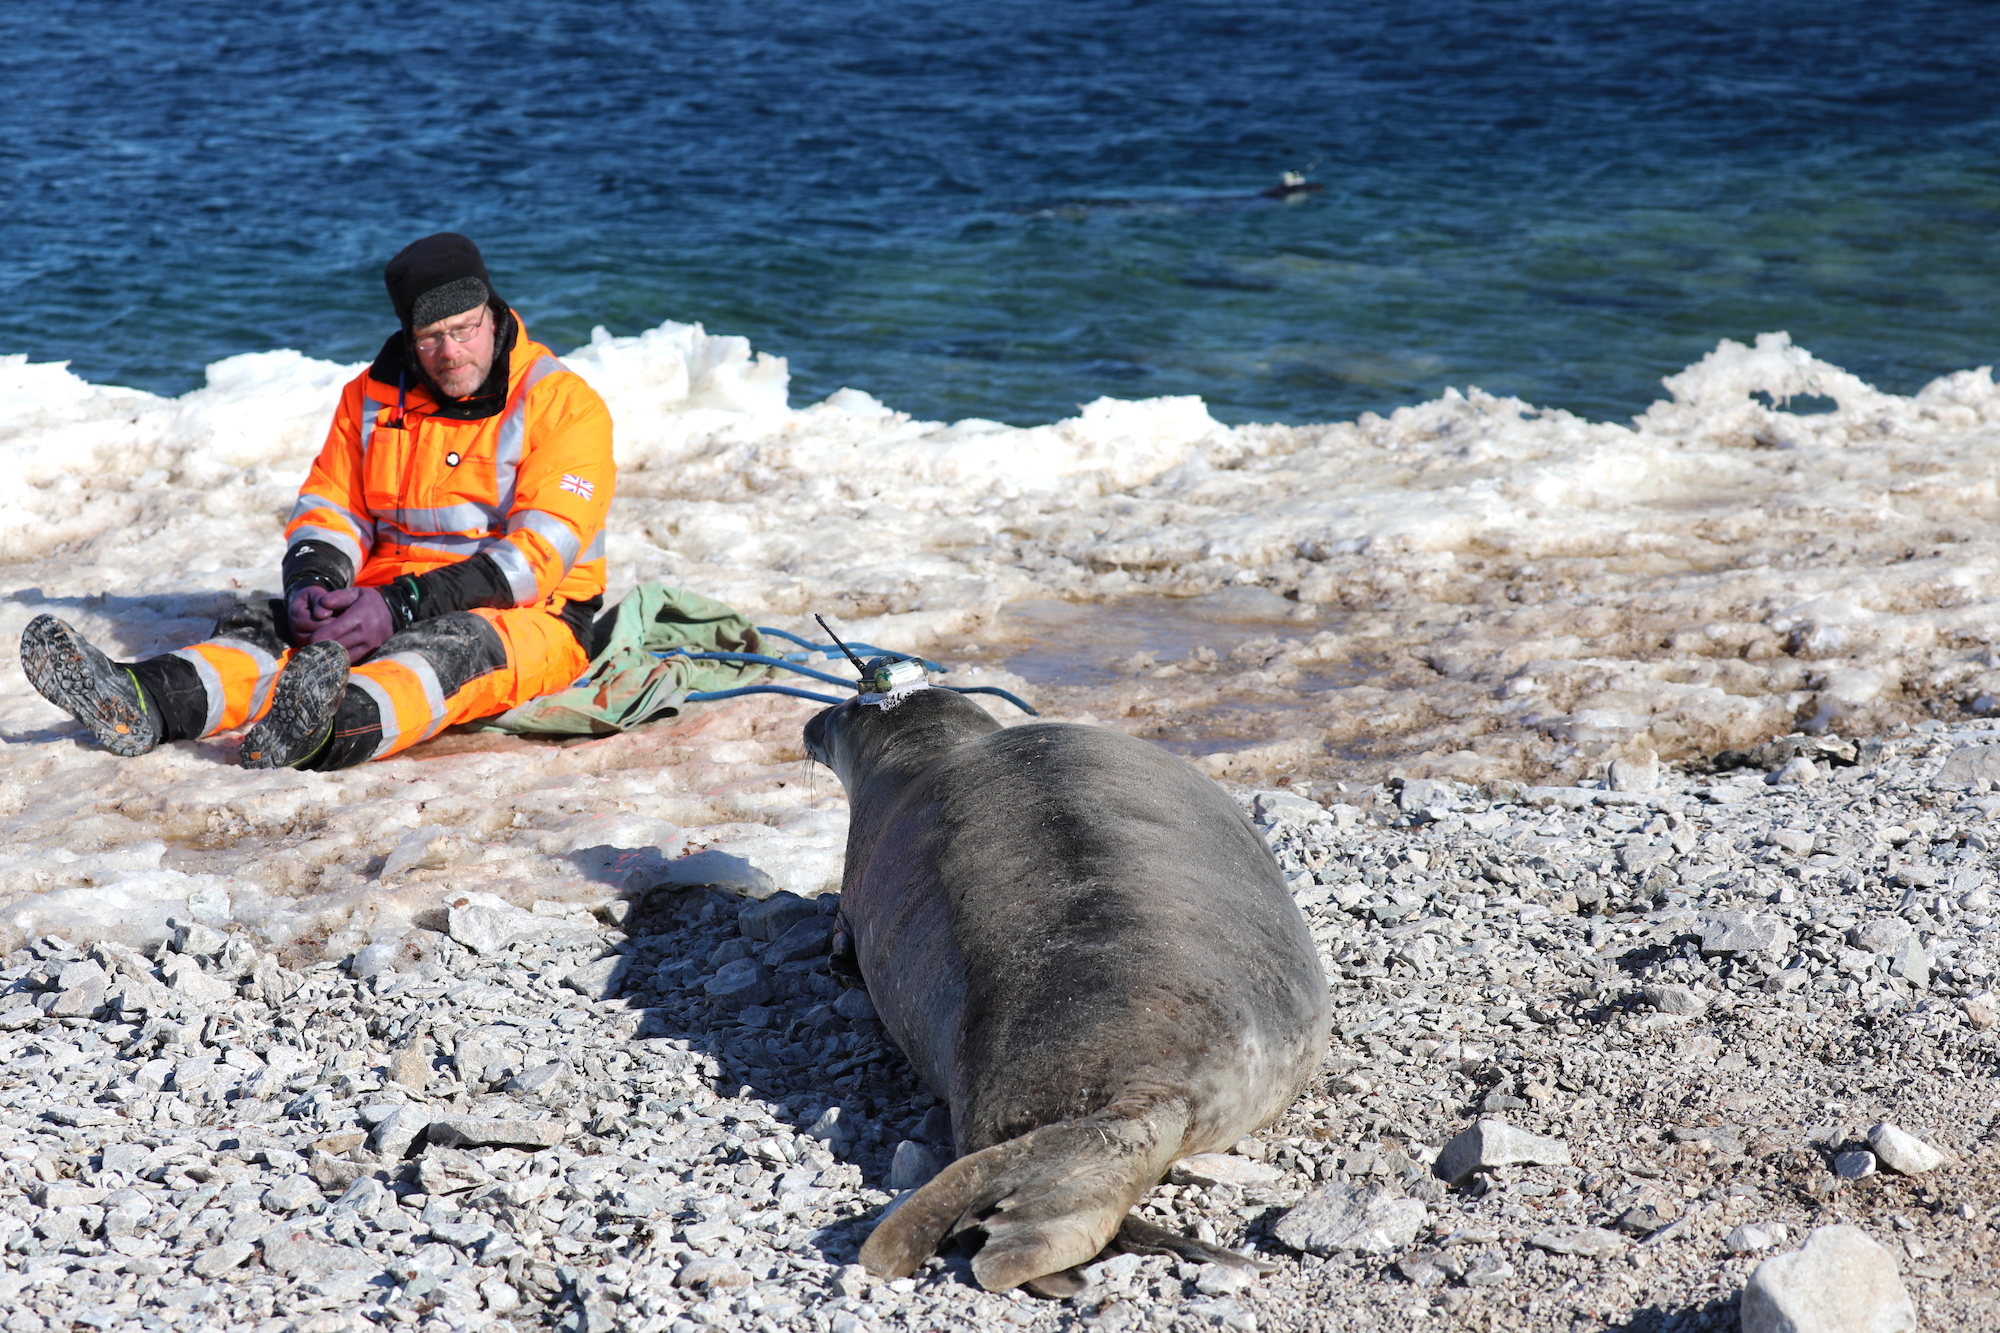 Lars Boehme sits between the second tagged seal and the water, keeping an eye on her as she awakens. The first tagged seal swims past in the background.  (Permit number for wildlife interactions: fco/uk permit no. 29/2018)